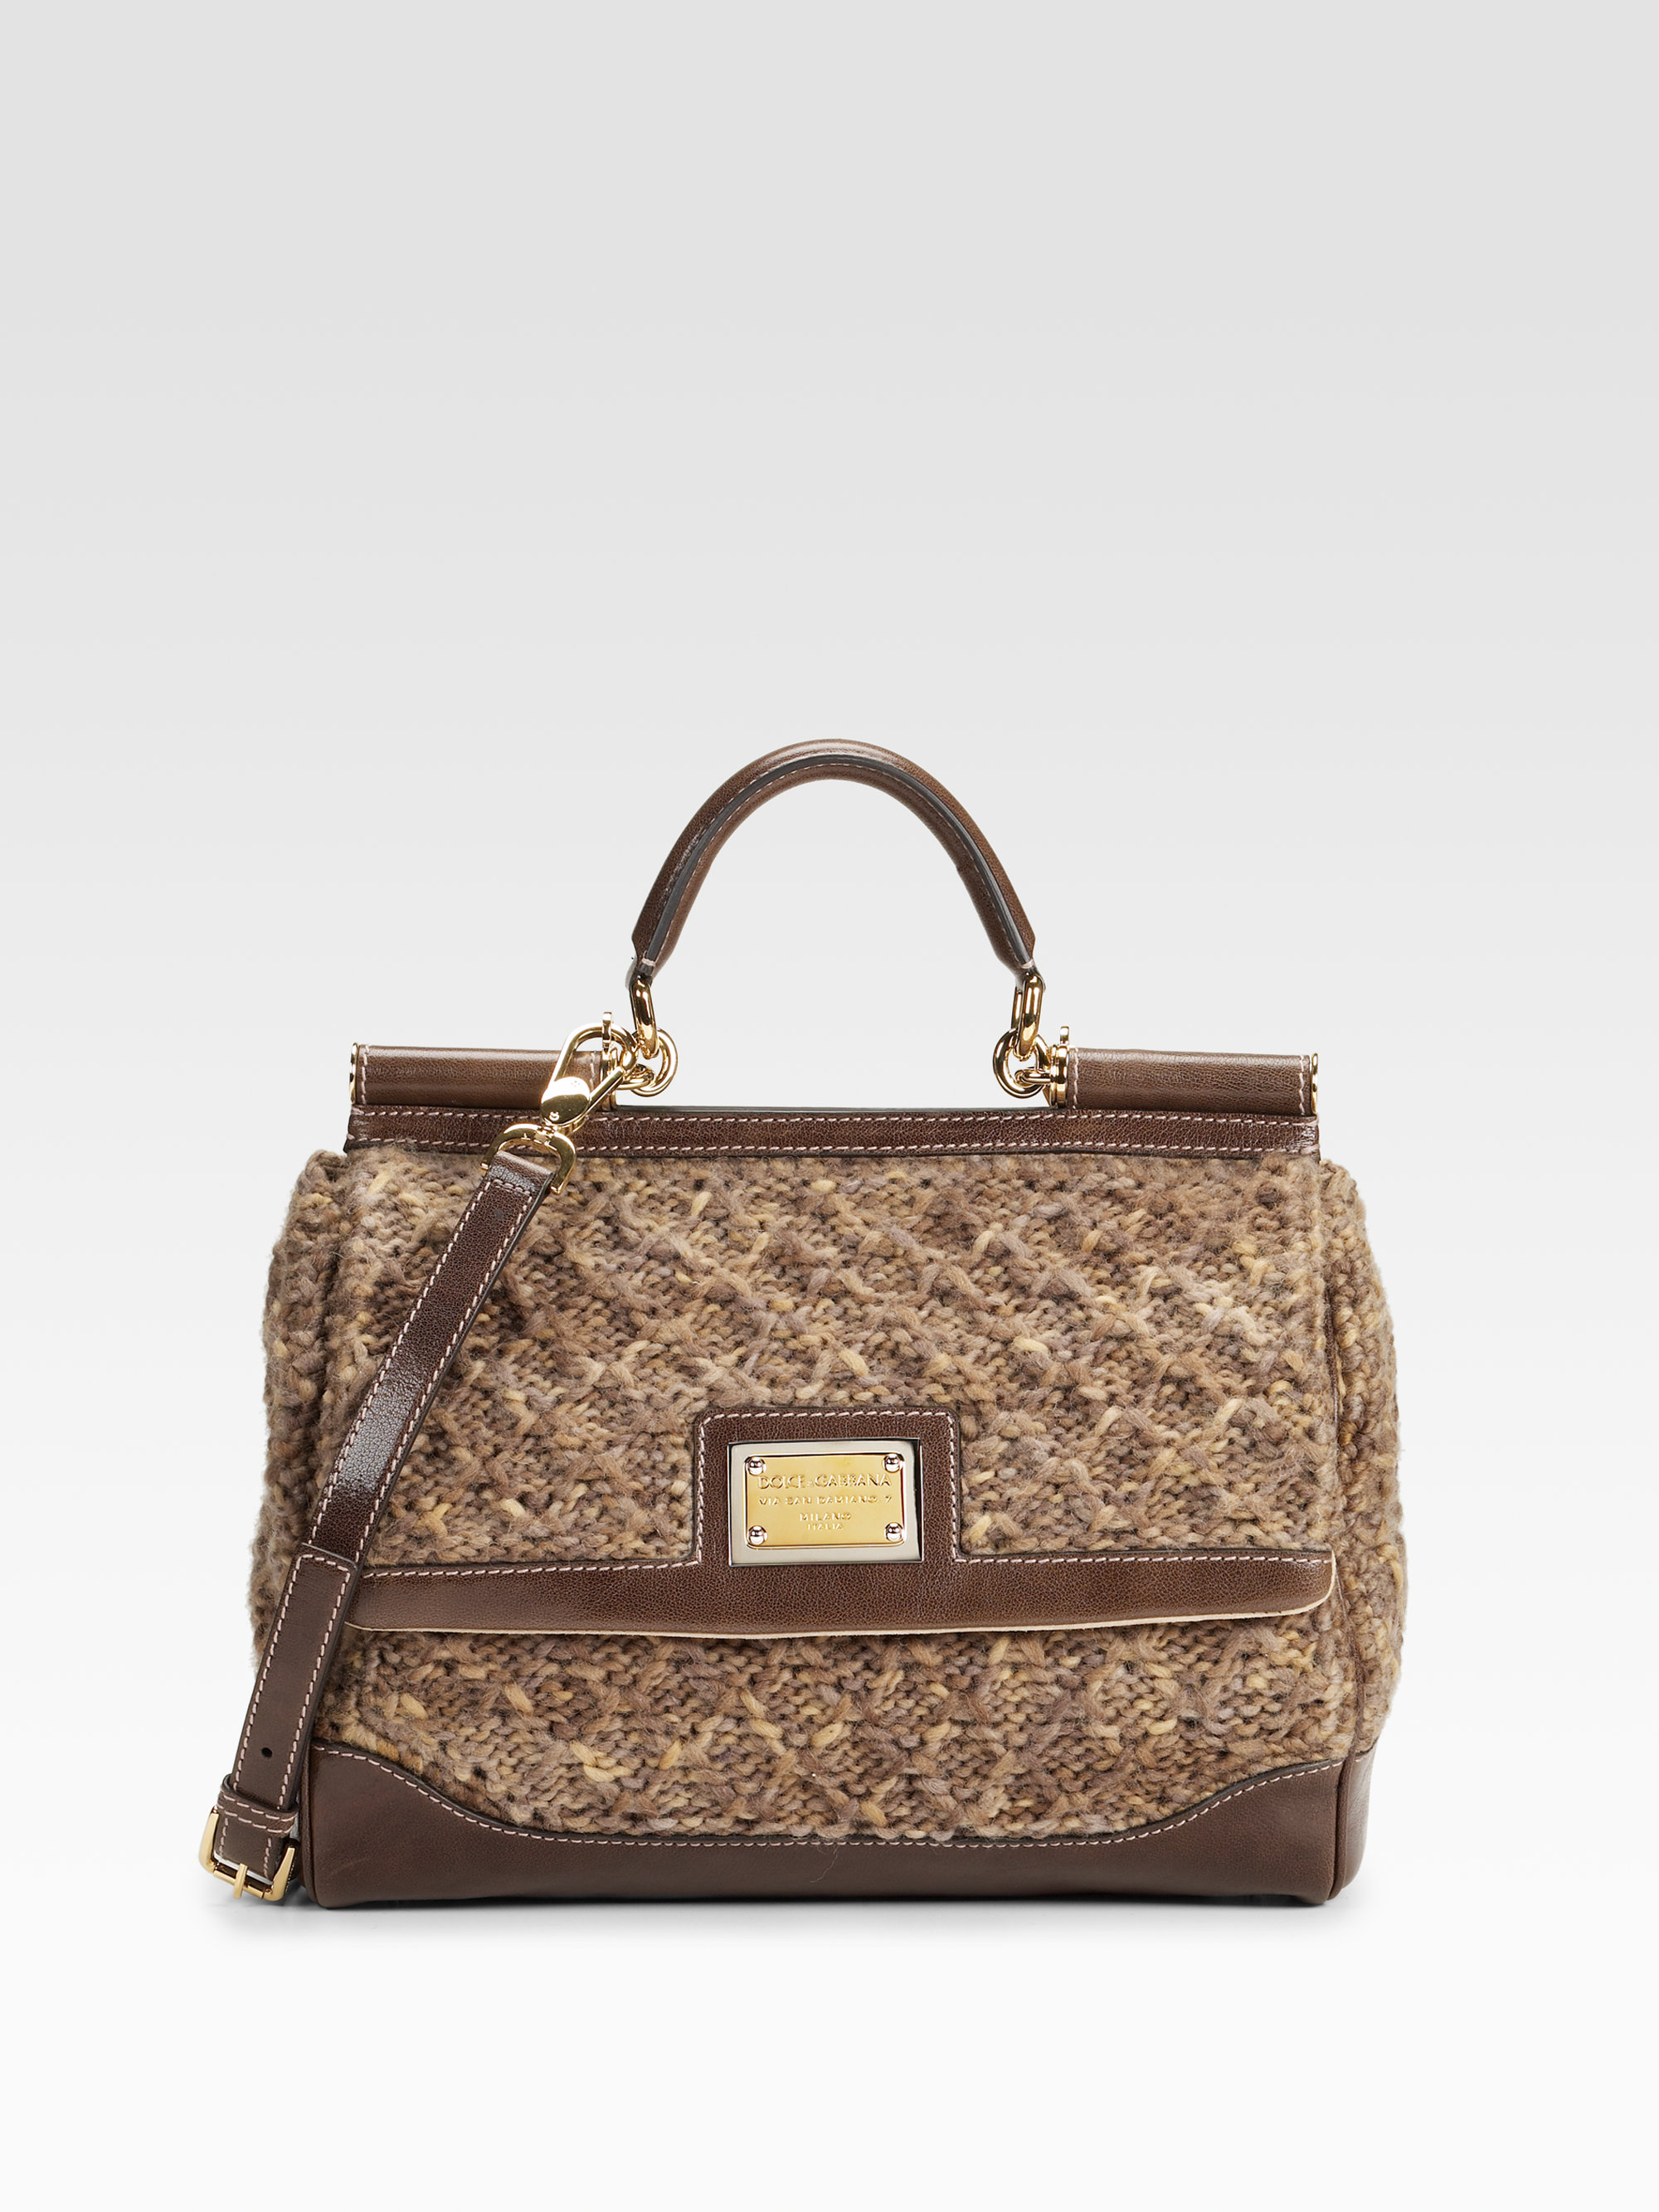 Leather Crochet Bag : Dolce & gabbana Miss Sicily Crochet Leather Bag in Brown Lyst